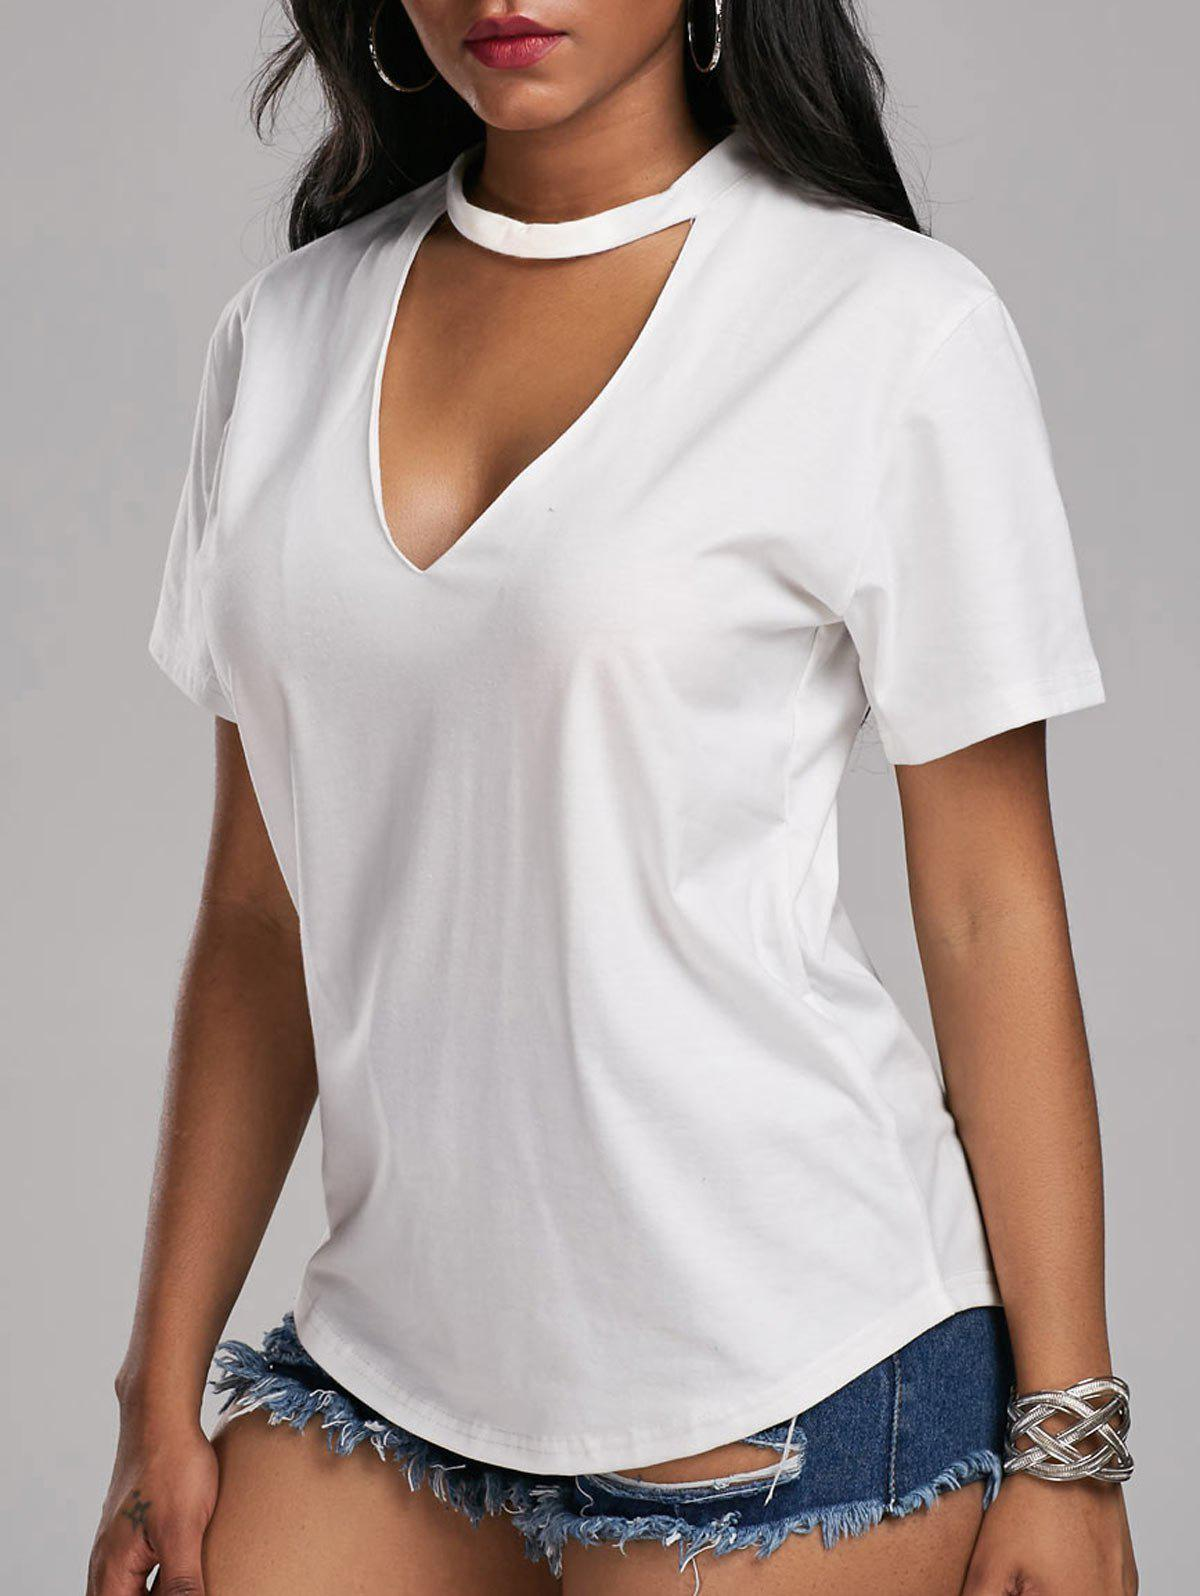 2018 Low Cut Choker T Shirt WHITE S In Tees & T-Shirts Online ...